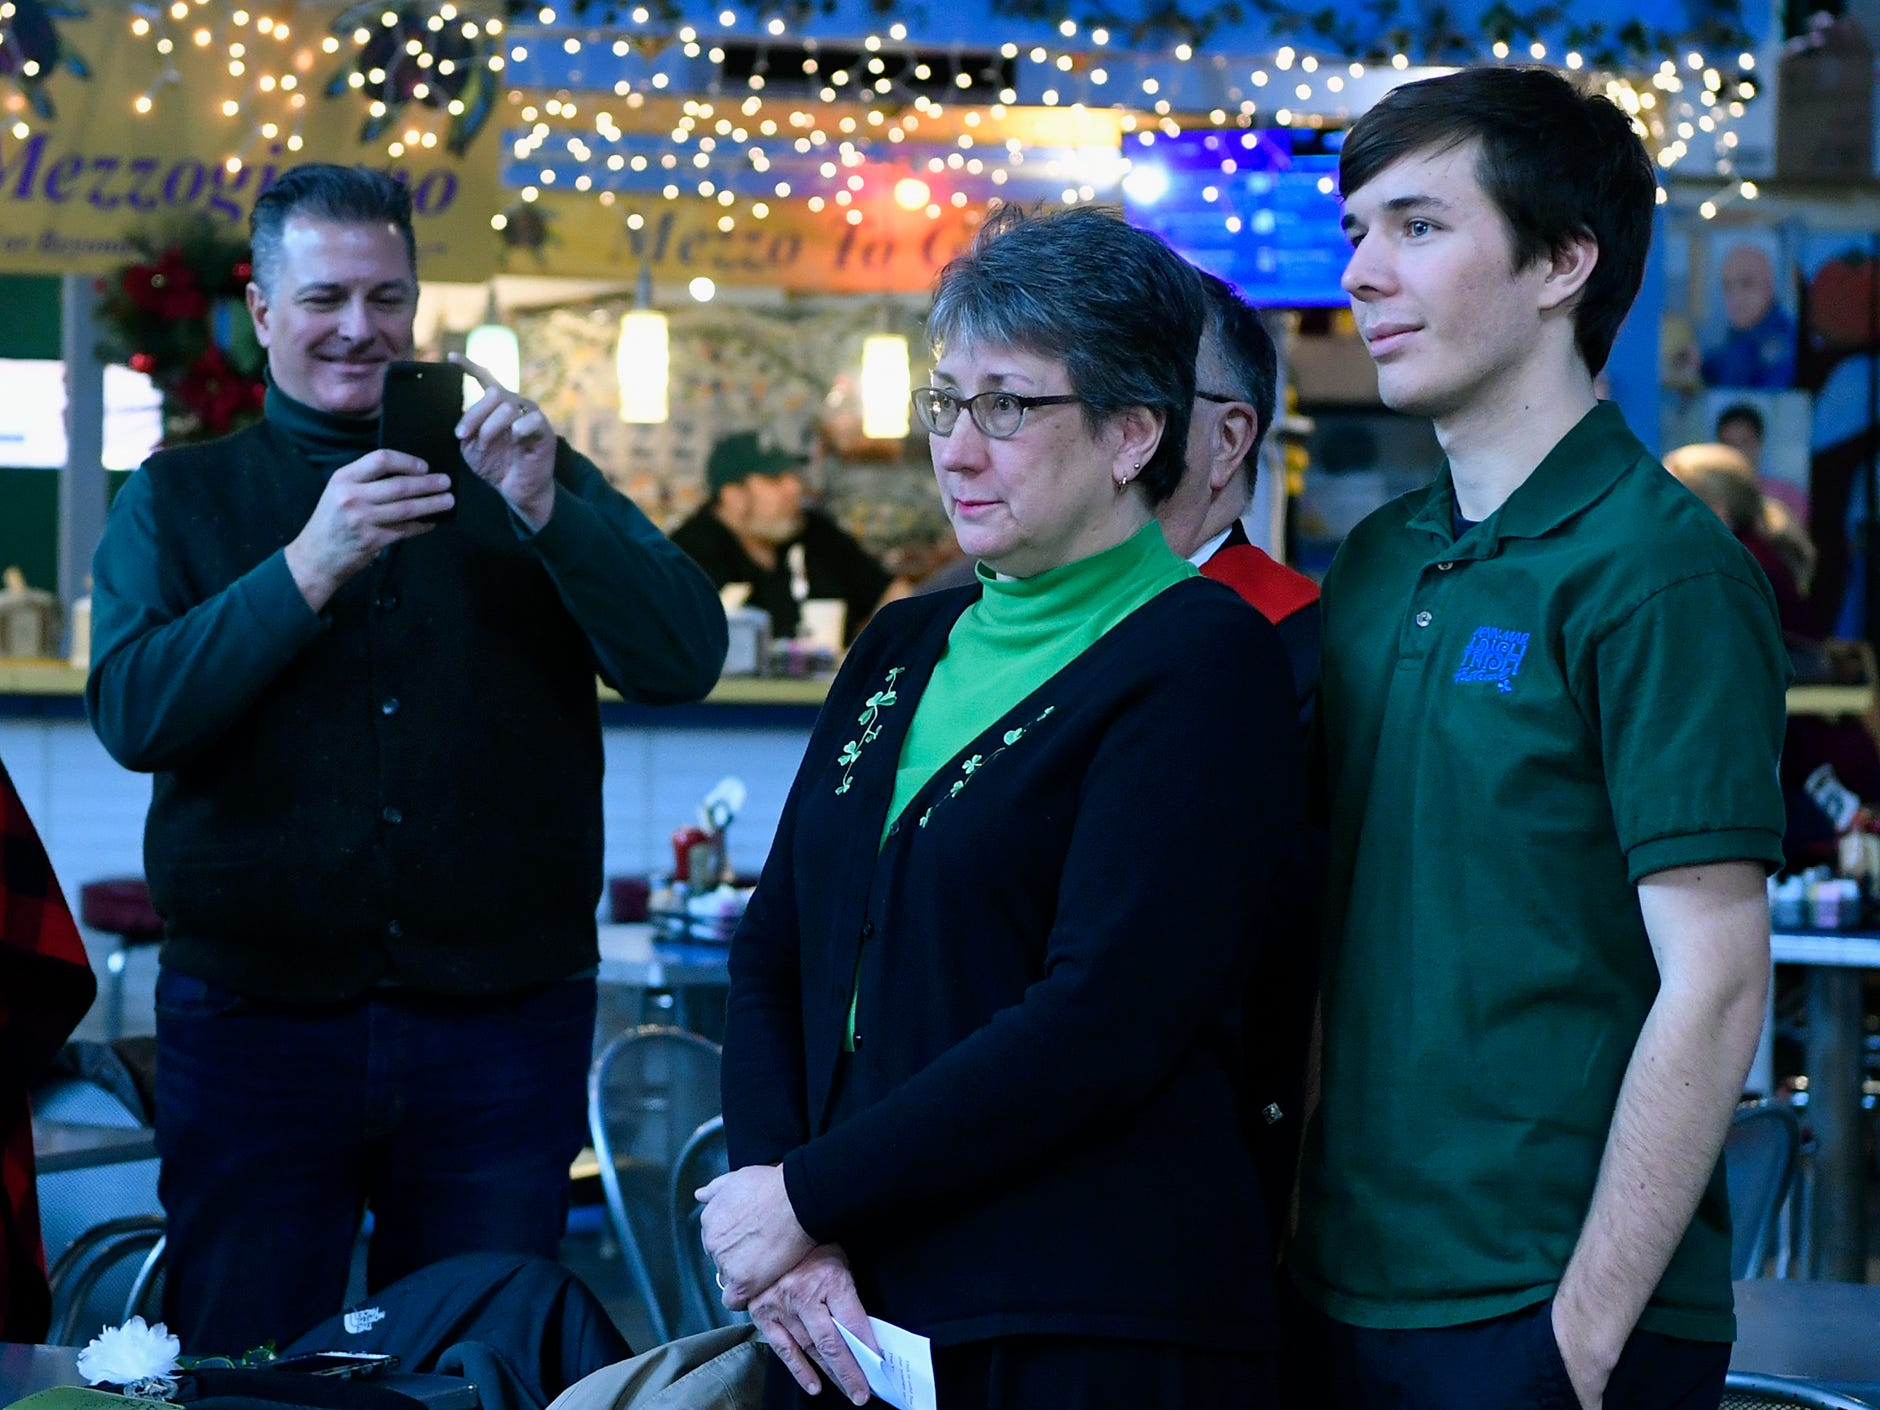 Mary Yeaple and son Jay, along with Rodney Yeaple are announced as the Grand Marshal family for the 36th Annual York Saint Patrick's Day Parade, Wednesday, January 9, 2019. The parade will be held Saturday, March 16. John A. Pavoncello photo